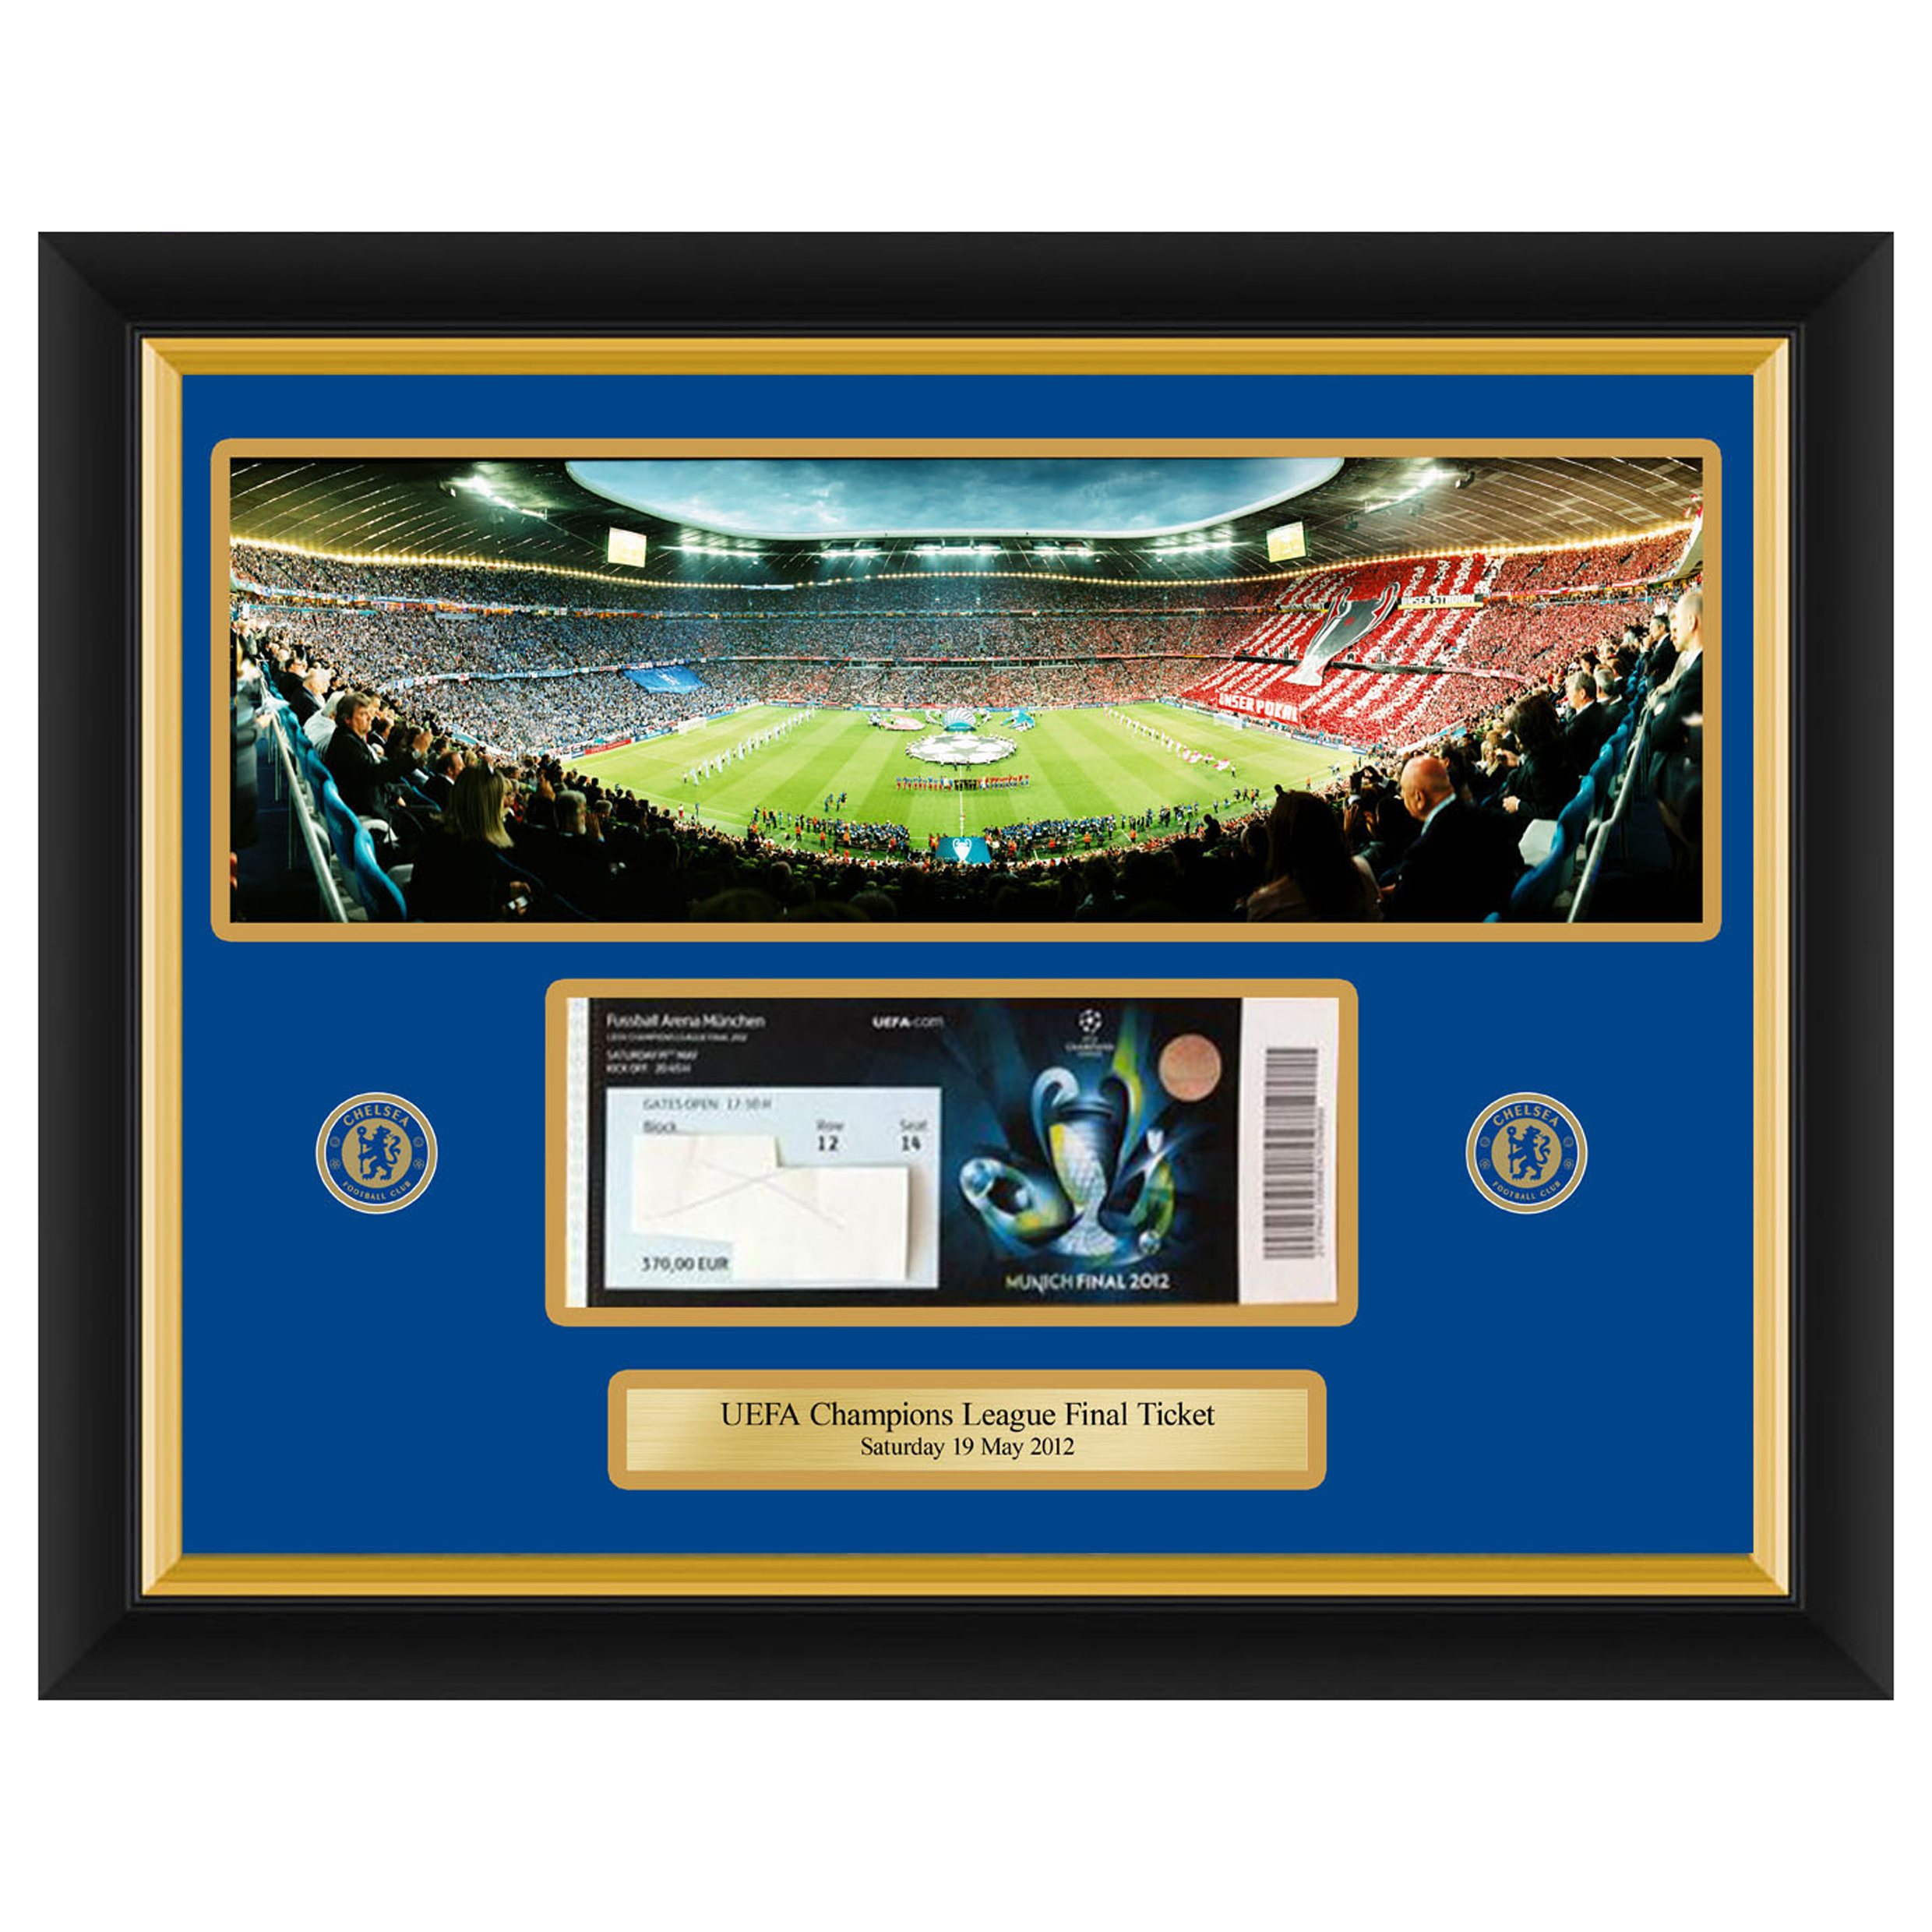 Chelsea Champions League Frame Your Own Ticket Panoramic